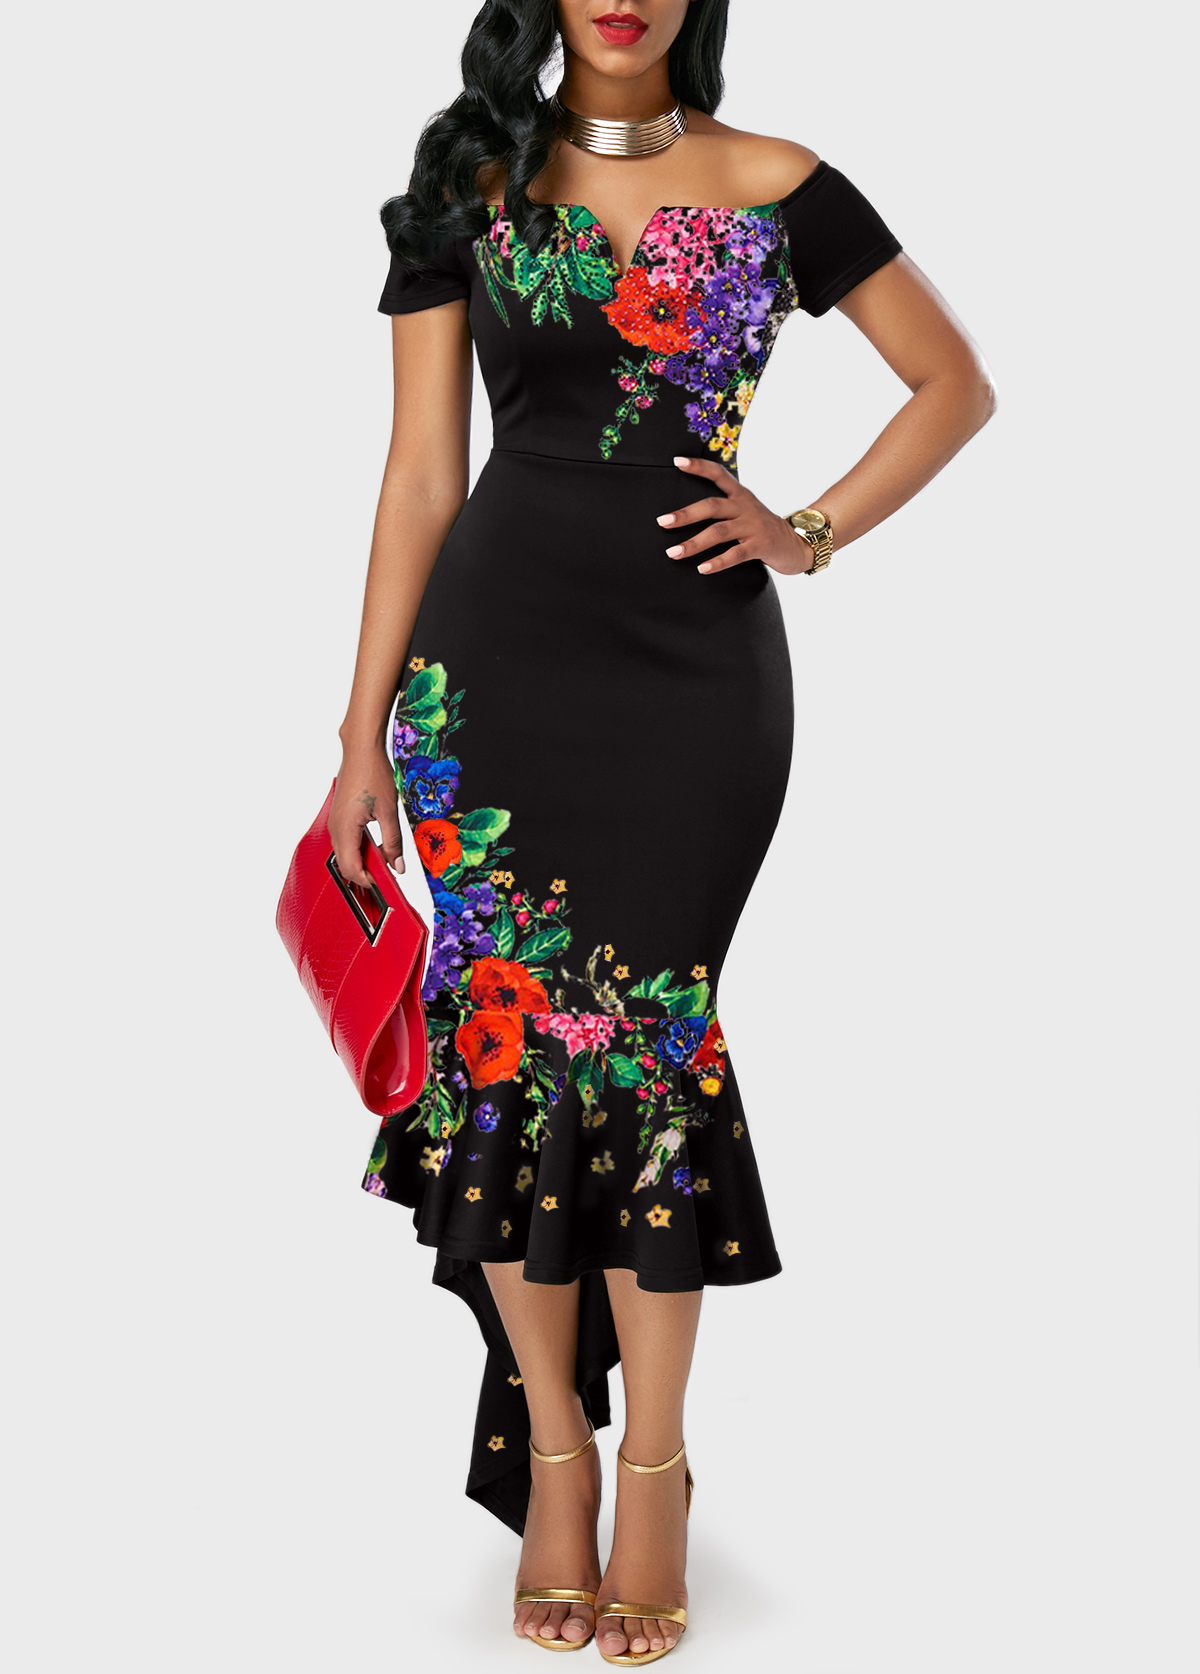 Retro Flower Print Off the Shoulder Black Sheath Dress